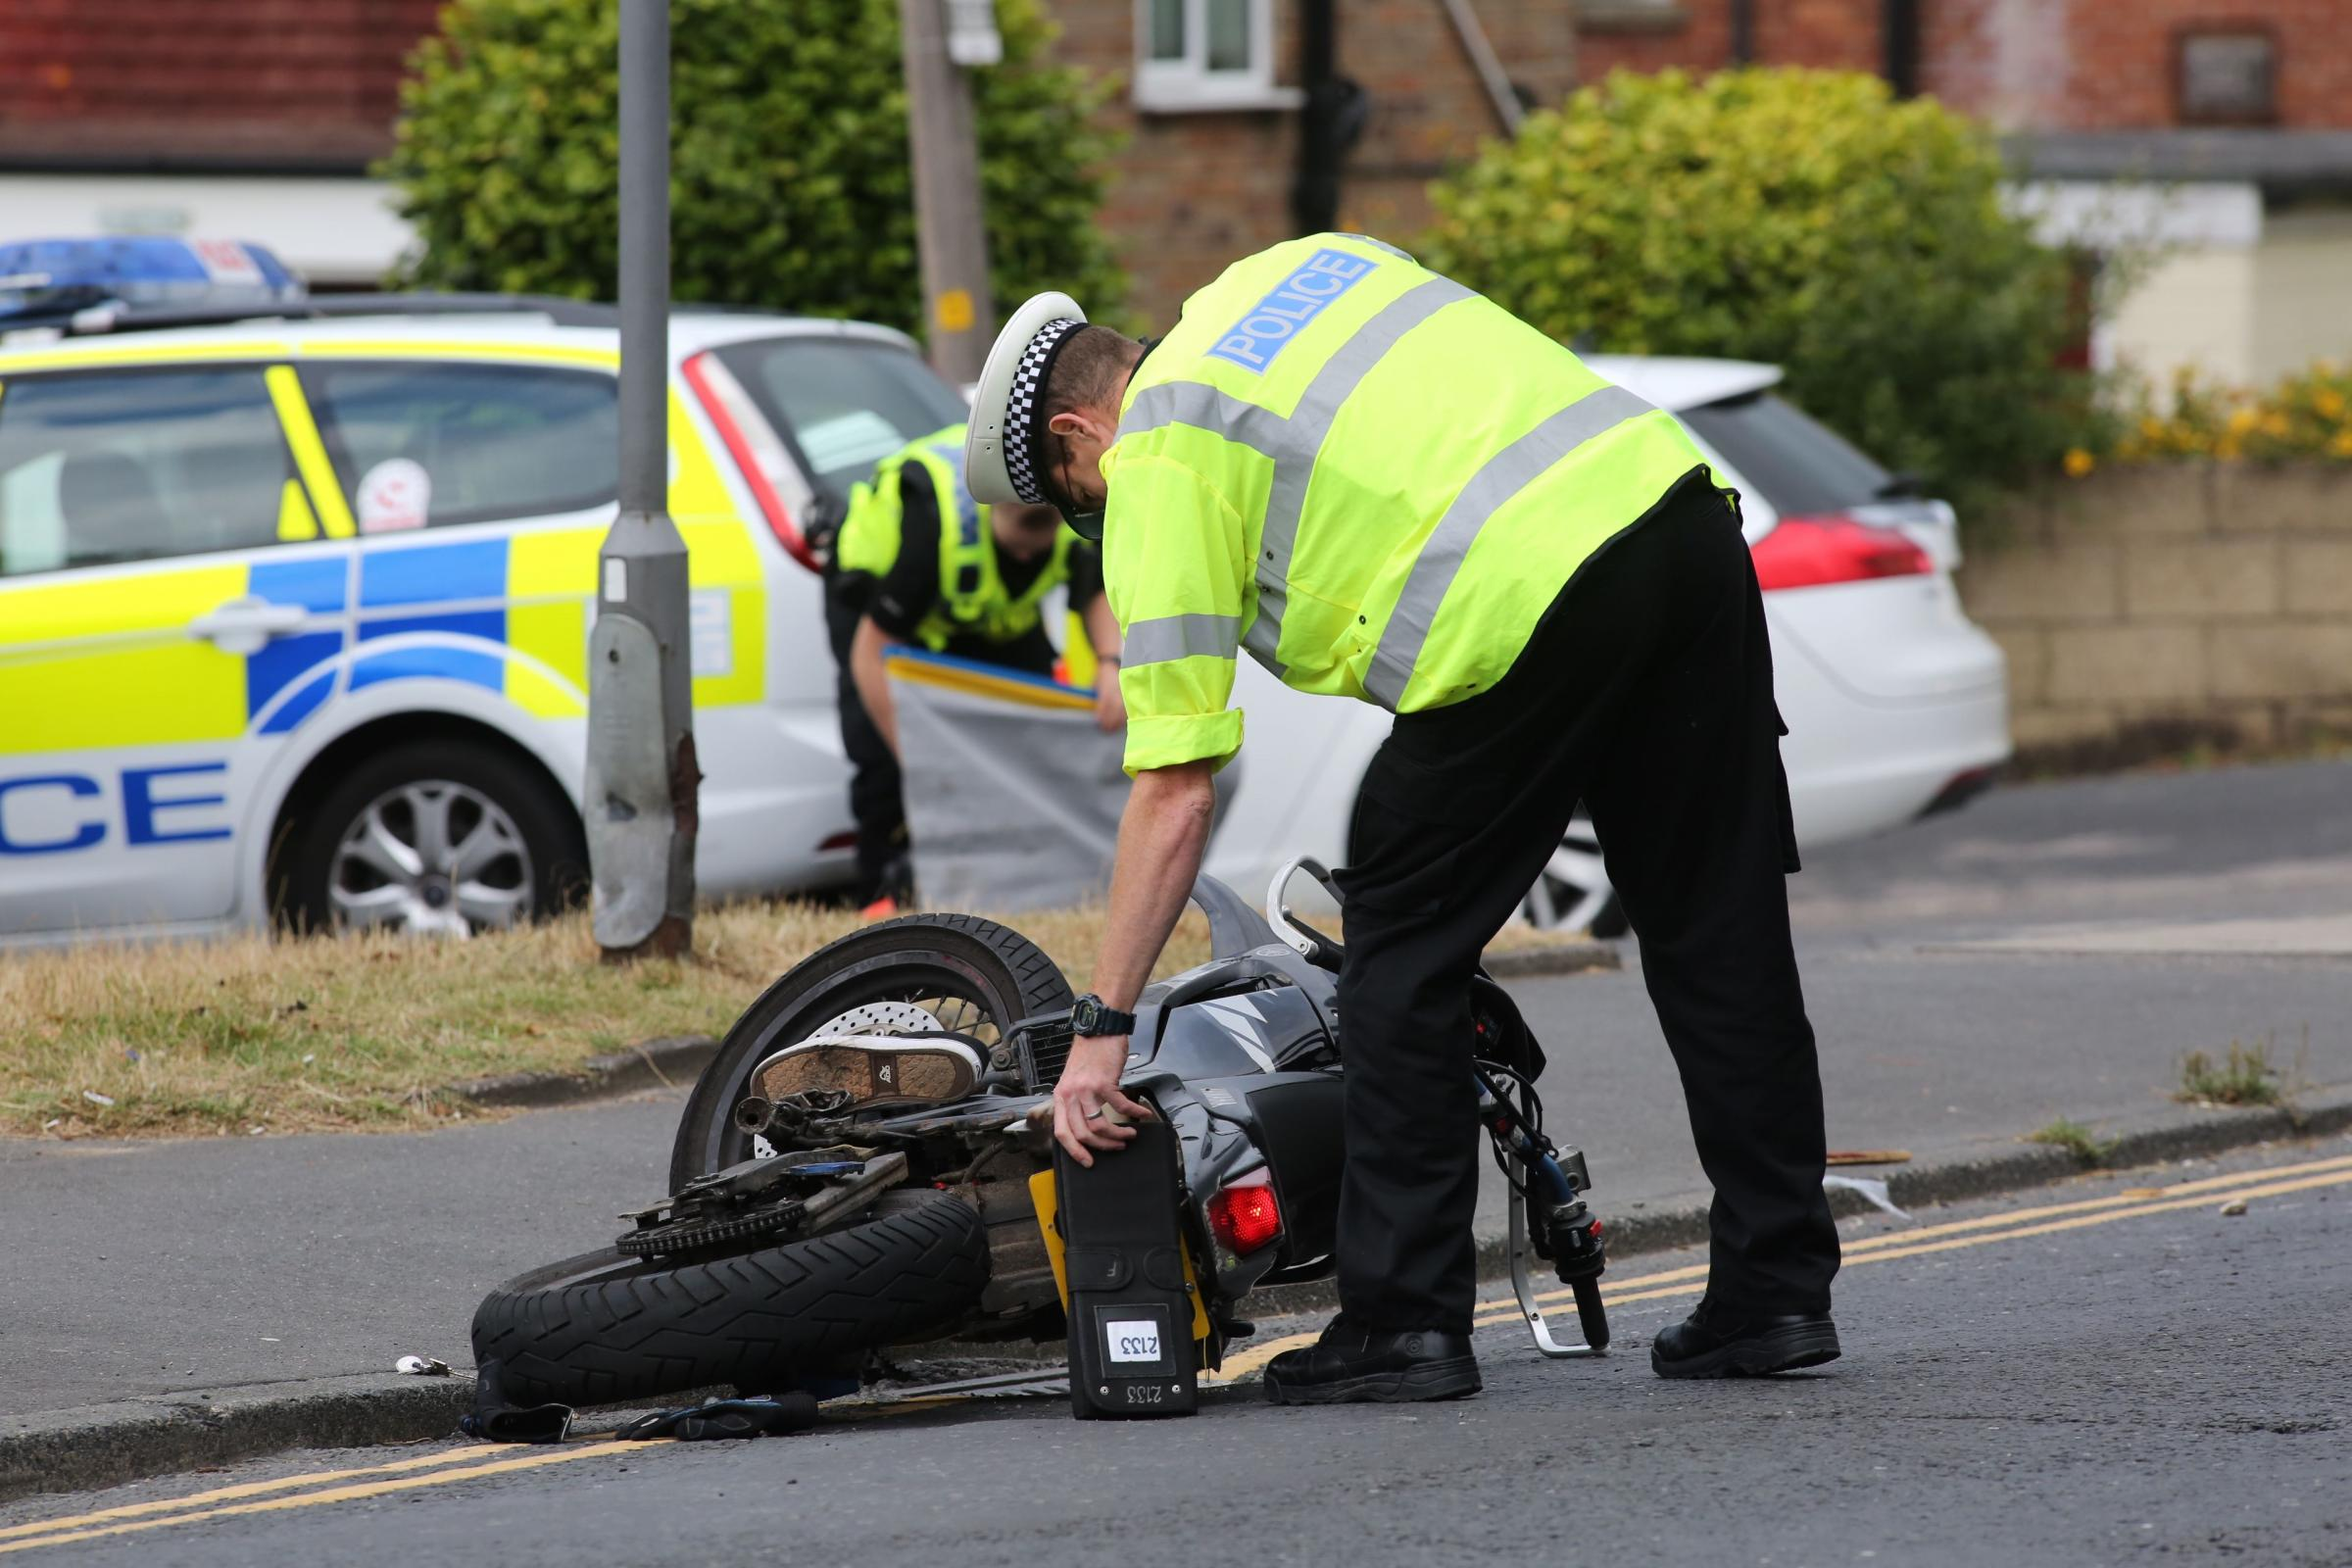 VIDEO: Motorcyclist suffers 'life-changing' foot injuries after serious two-vehicle crash